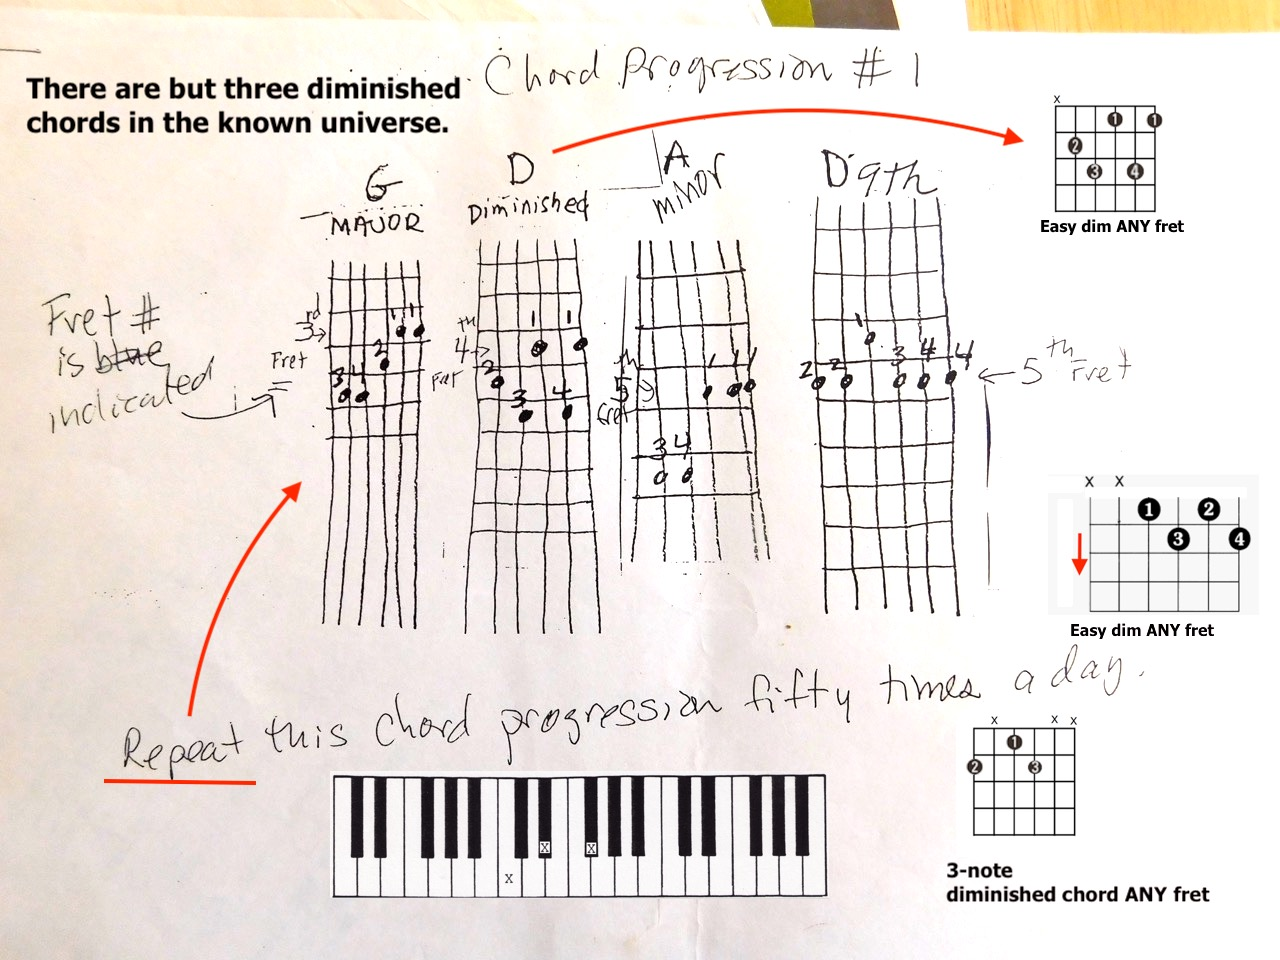 Chords and lyrics swing guitar chord progressiong hexwebz Choice Image